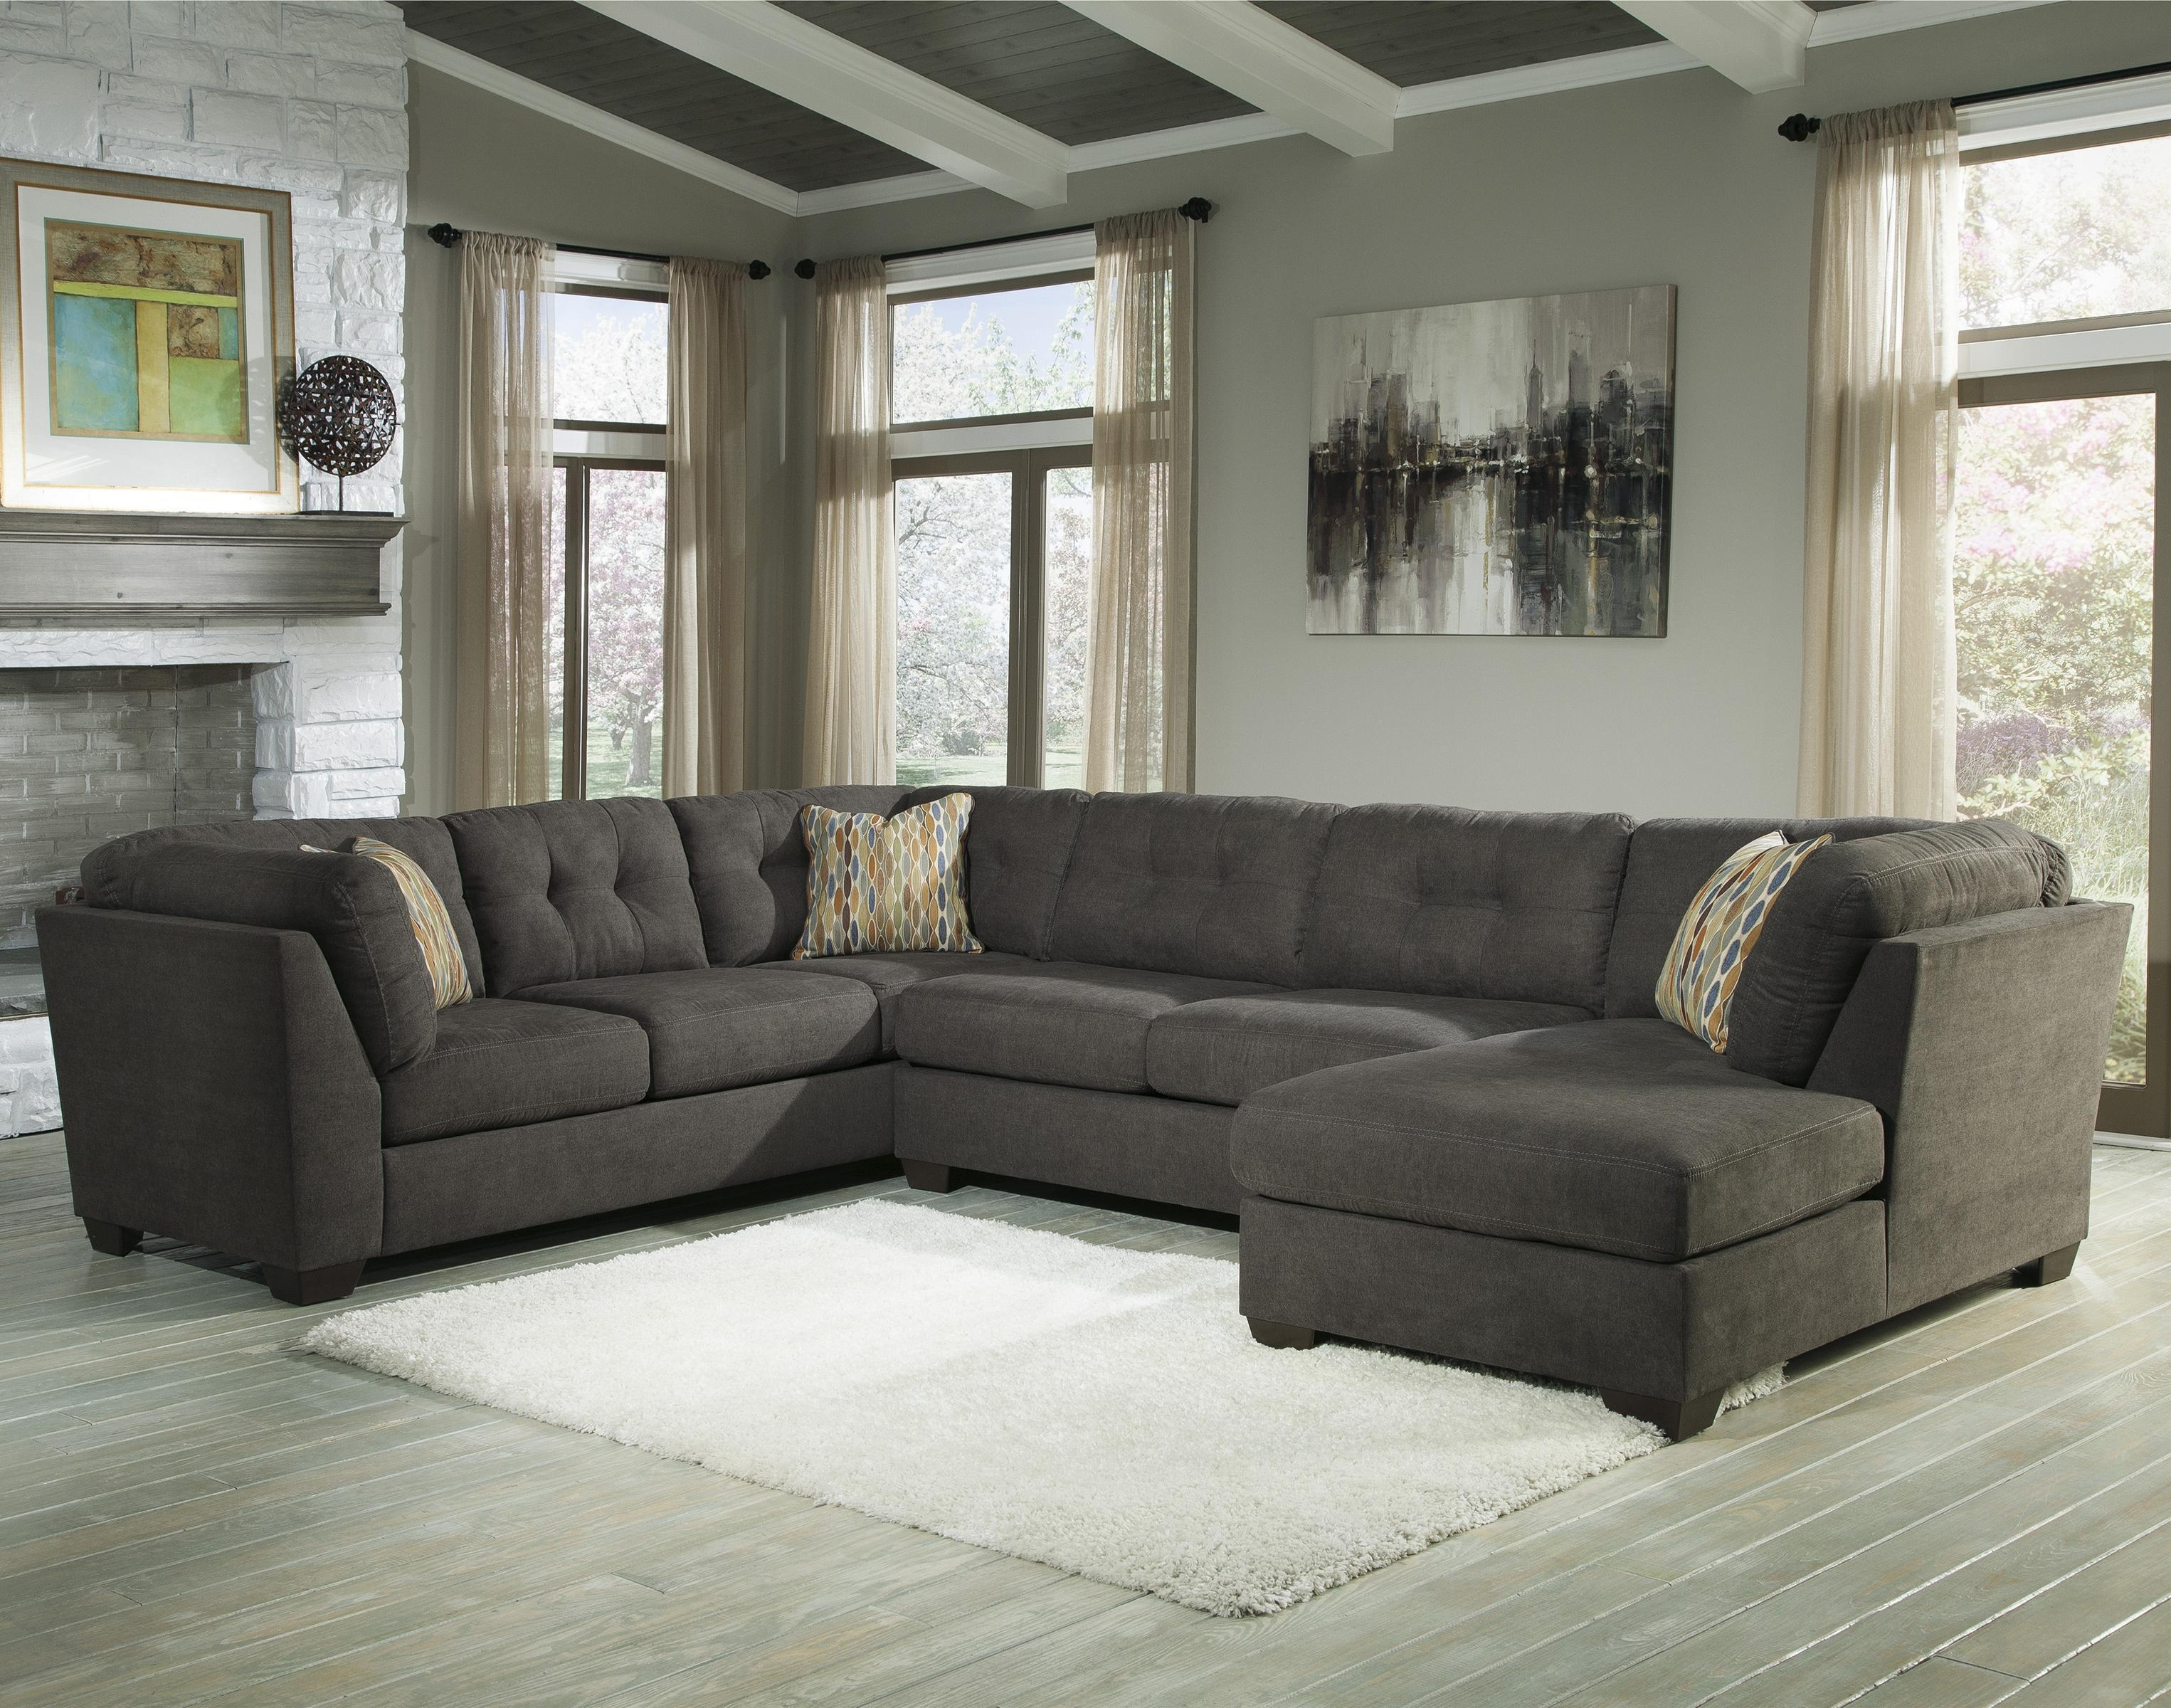 Benchcraft Delta City – Steel 3 Piece Modular Sectional With Right Inside 3 Piece Sectional Sleeper Sofa (View 8 of 15)